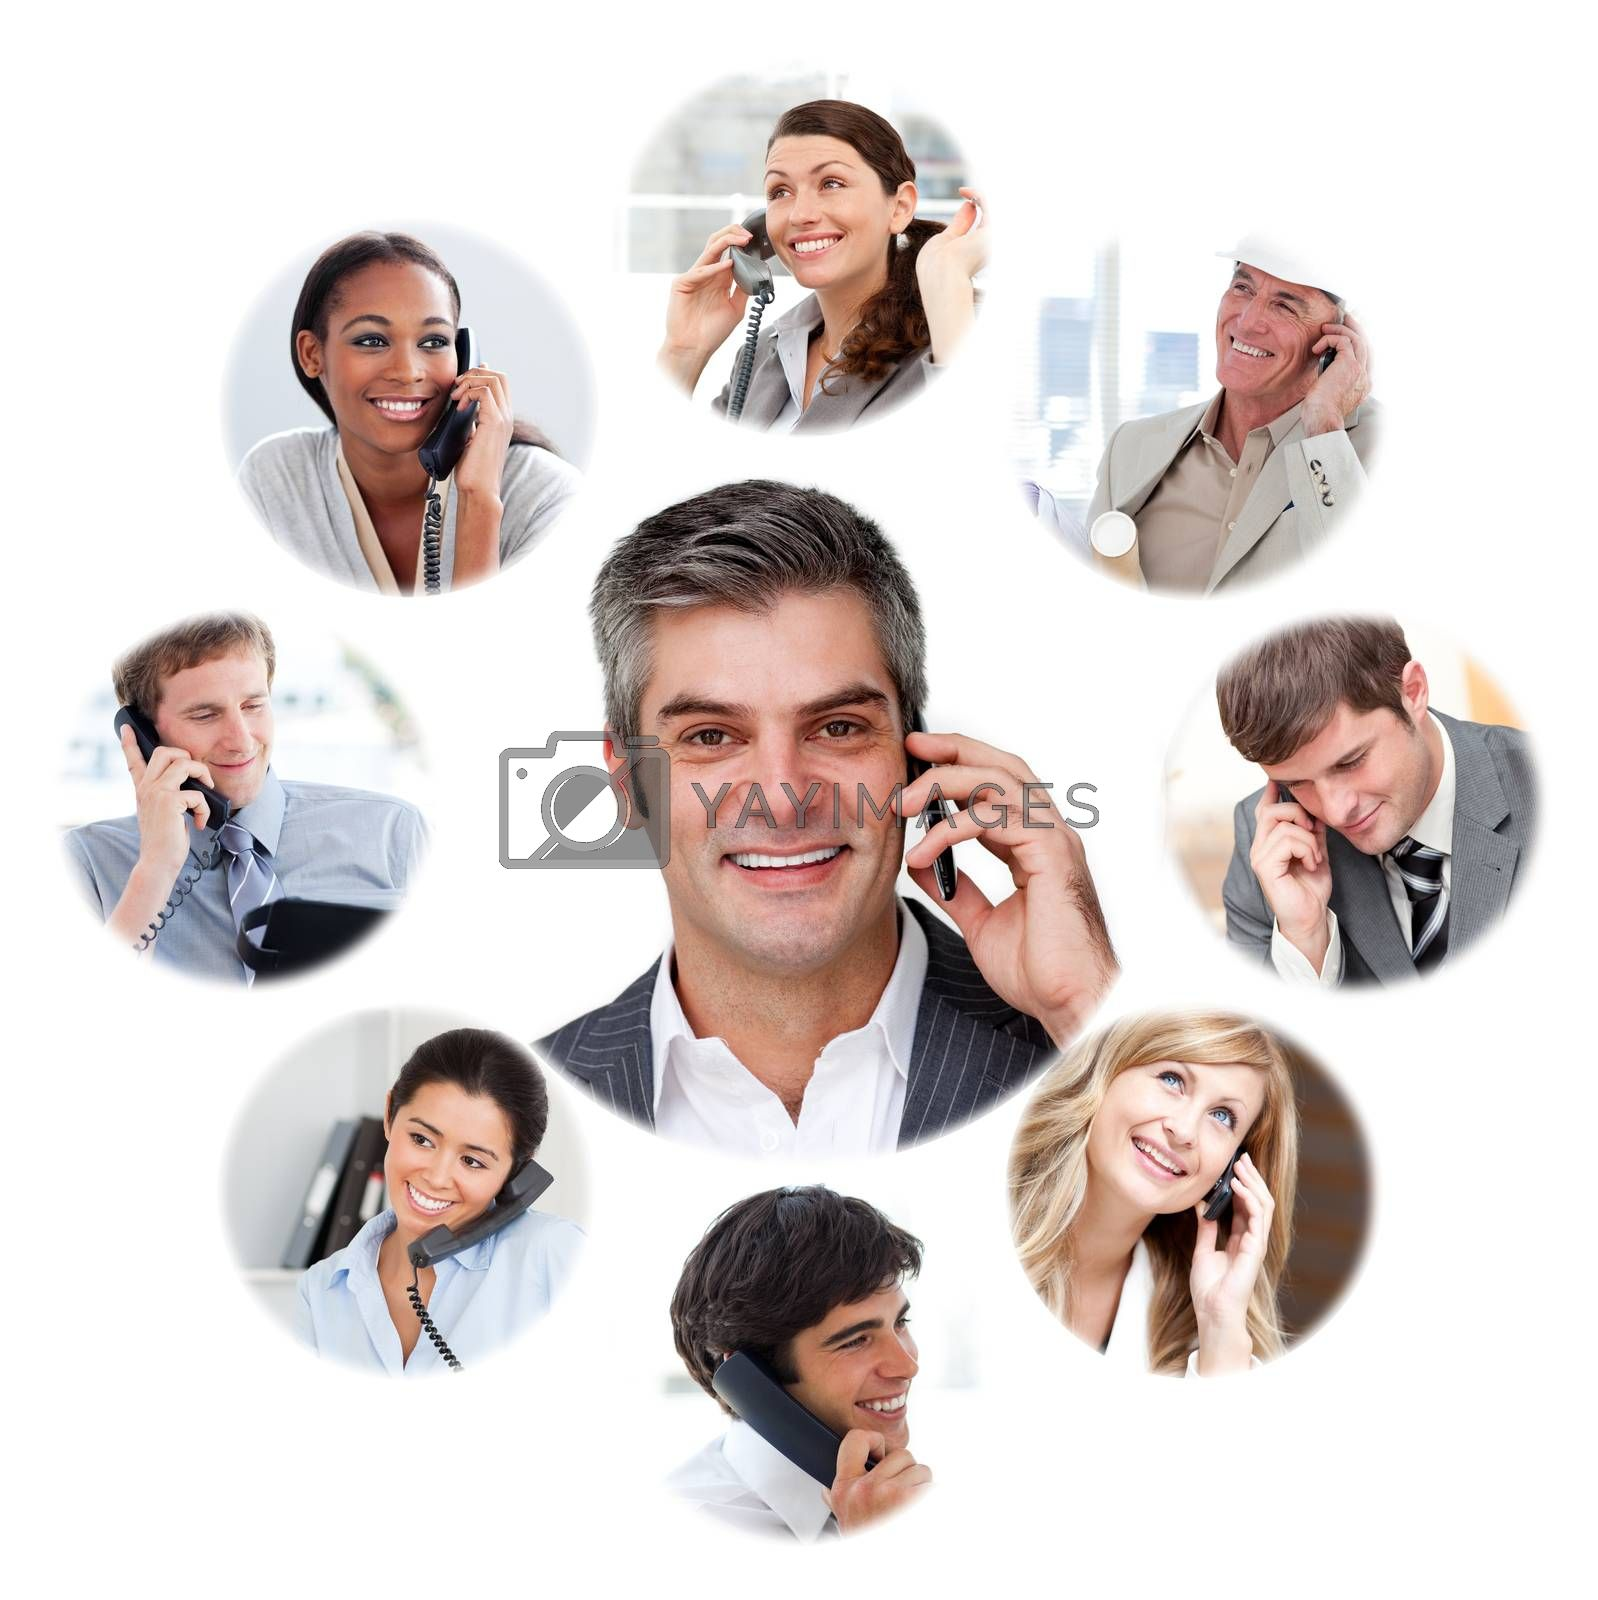 Illustration about business communication against a white background